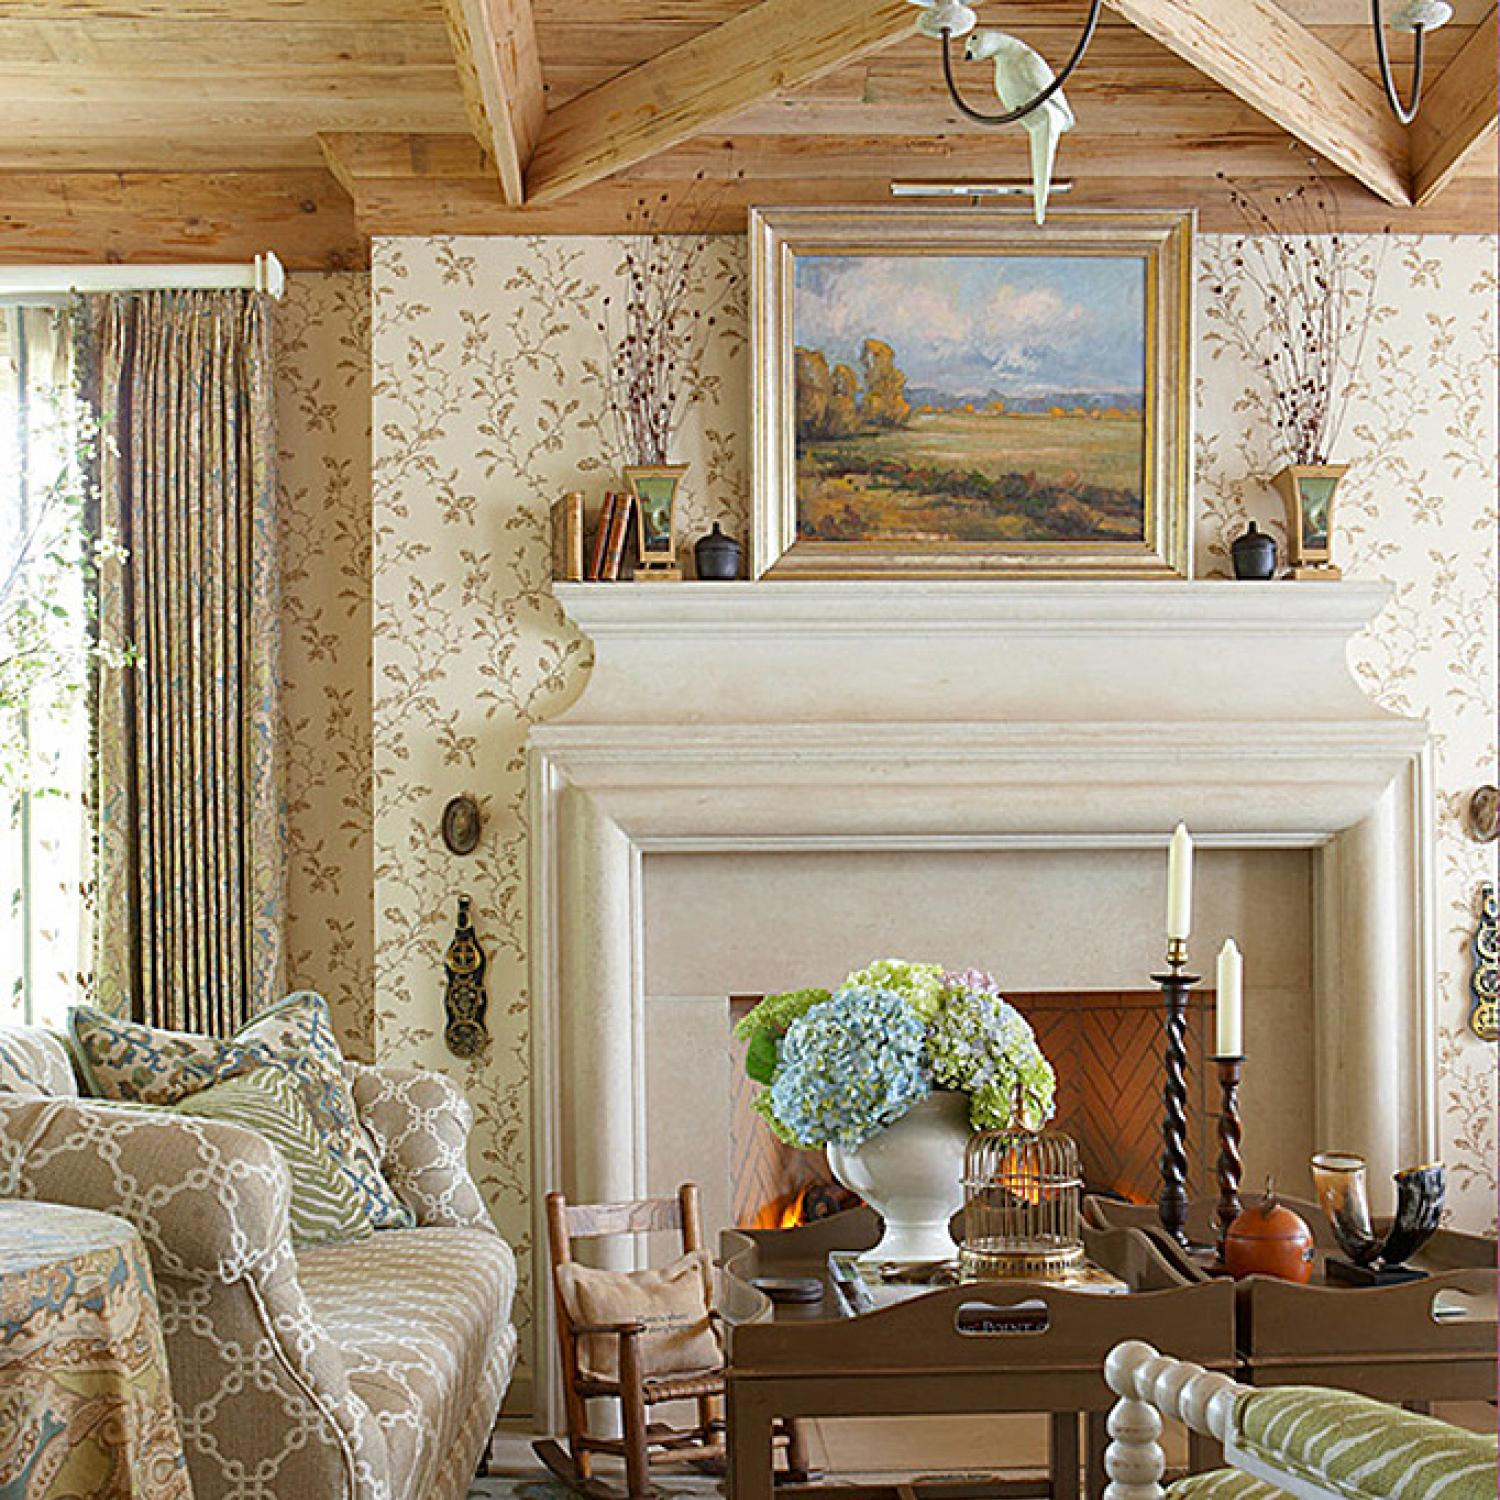 Faudree Inspired Design In A Sunroom Traditional Home